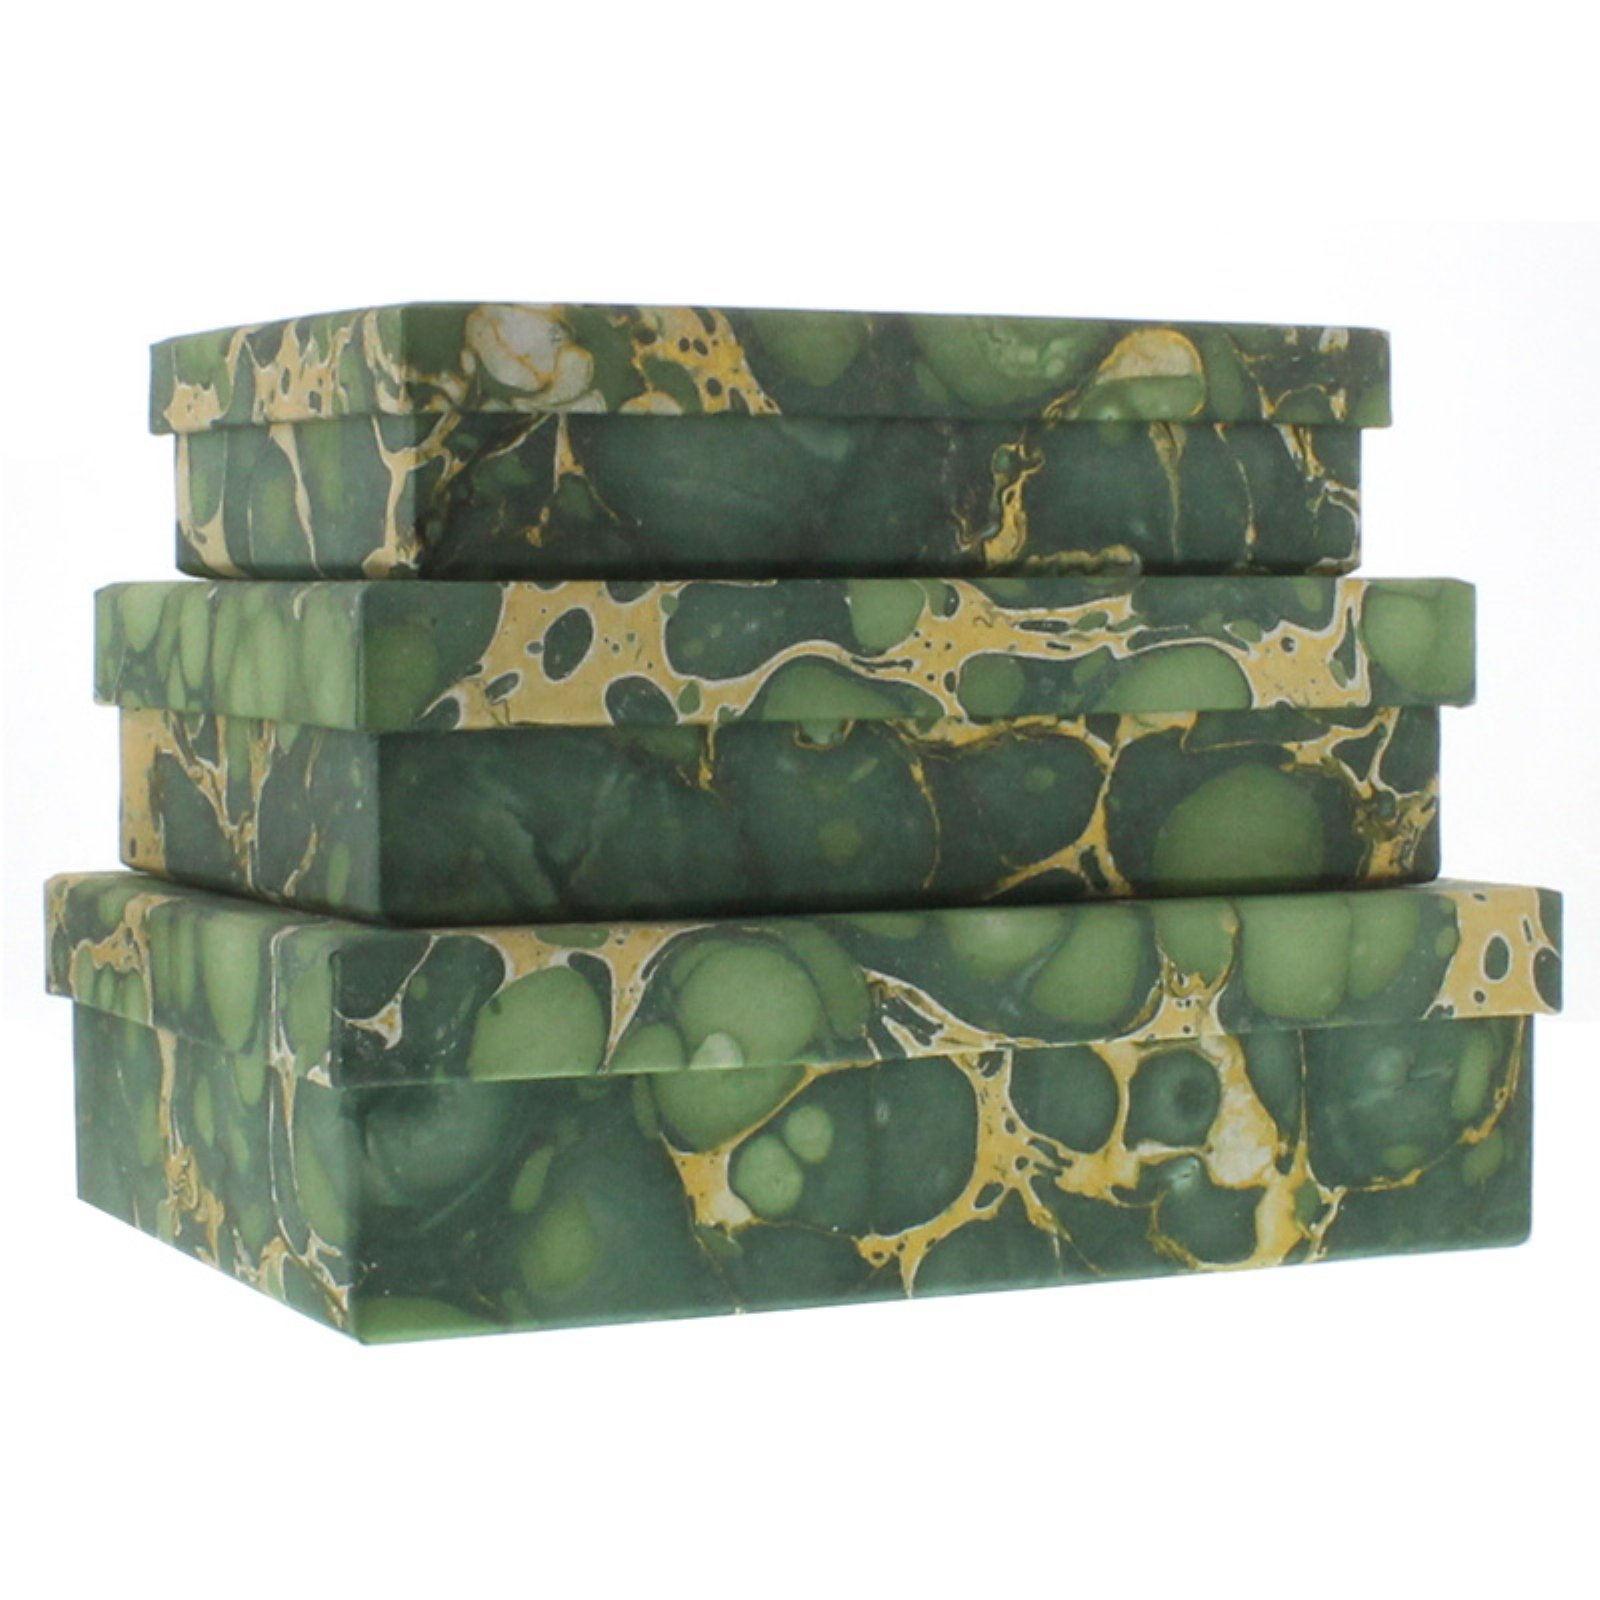 Marbleized Paper Nesting Boxes - Set of 3